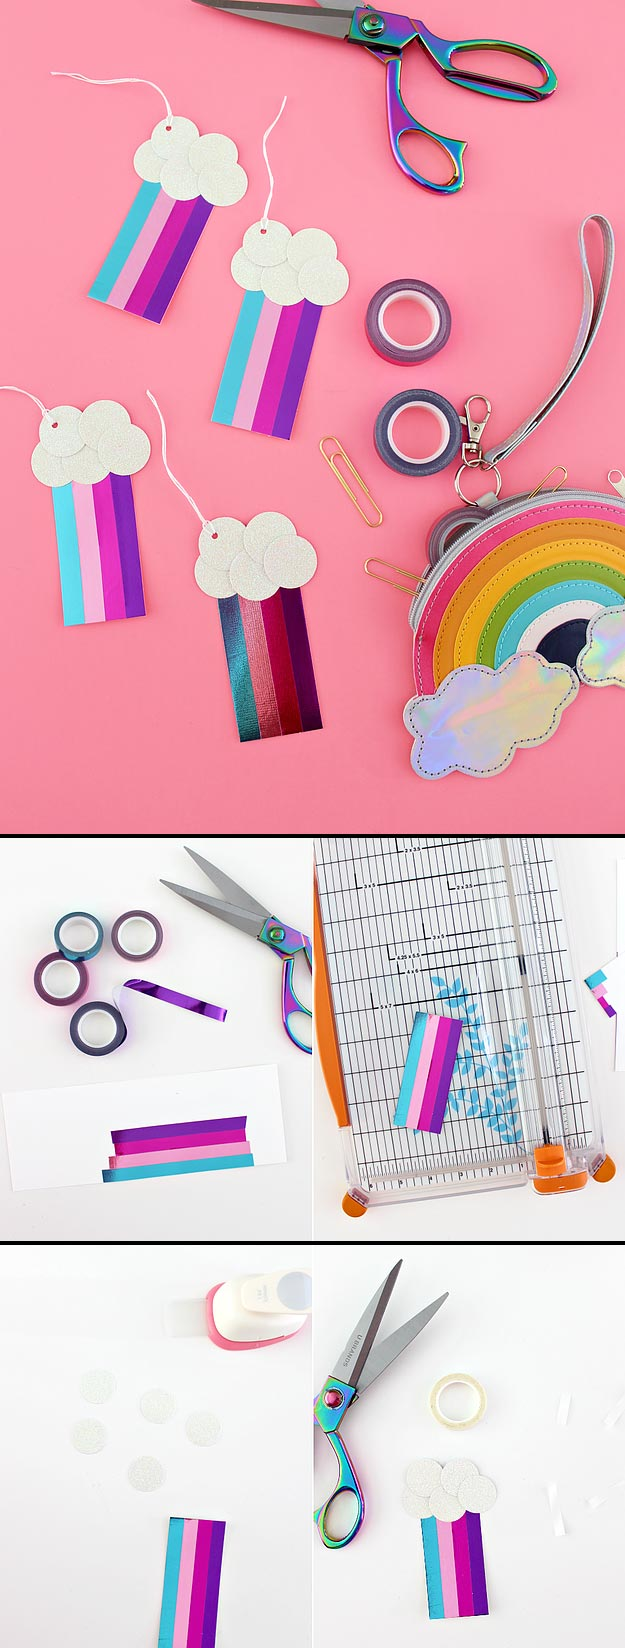 Cheap Crafts - Metallic Washi Tape Rainbow Tags - Inexpensive Craft Project Ideas for Teenagers, Teens and Adults - Easy DIY Ideas To Make On A Budget - Cool Dollar Store Crafts and Things You Can Make For Free - Homemade Wall Art and Room Decor, Gifts and Presents, Tutorials and Step by Step Instructions http://teencrafts.com/cheap-diy-crafts